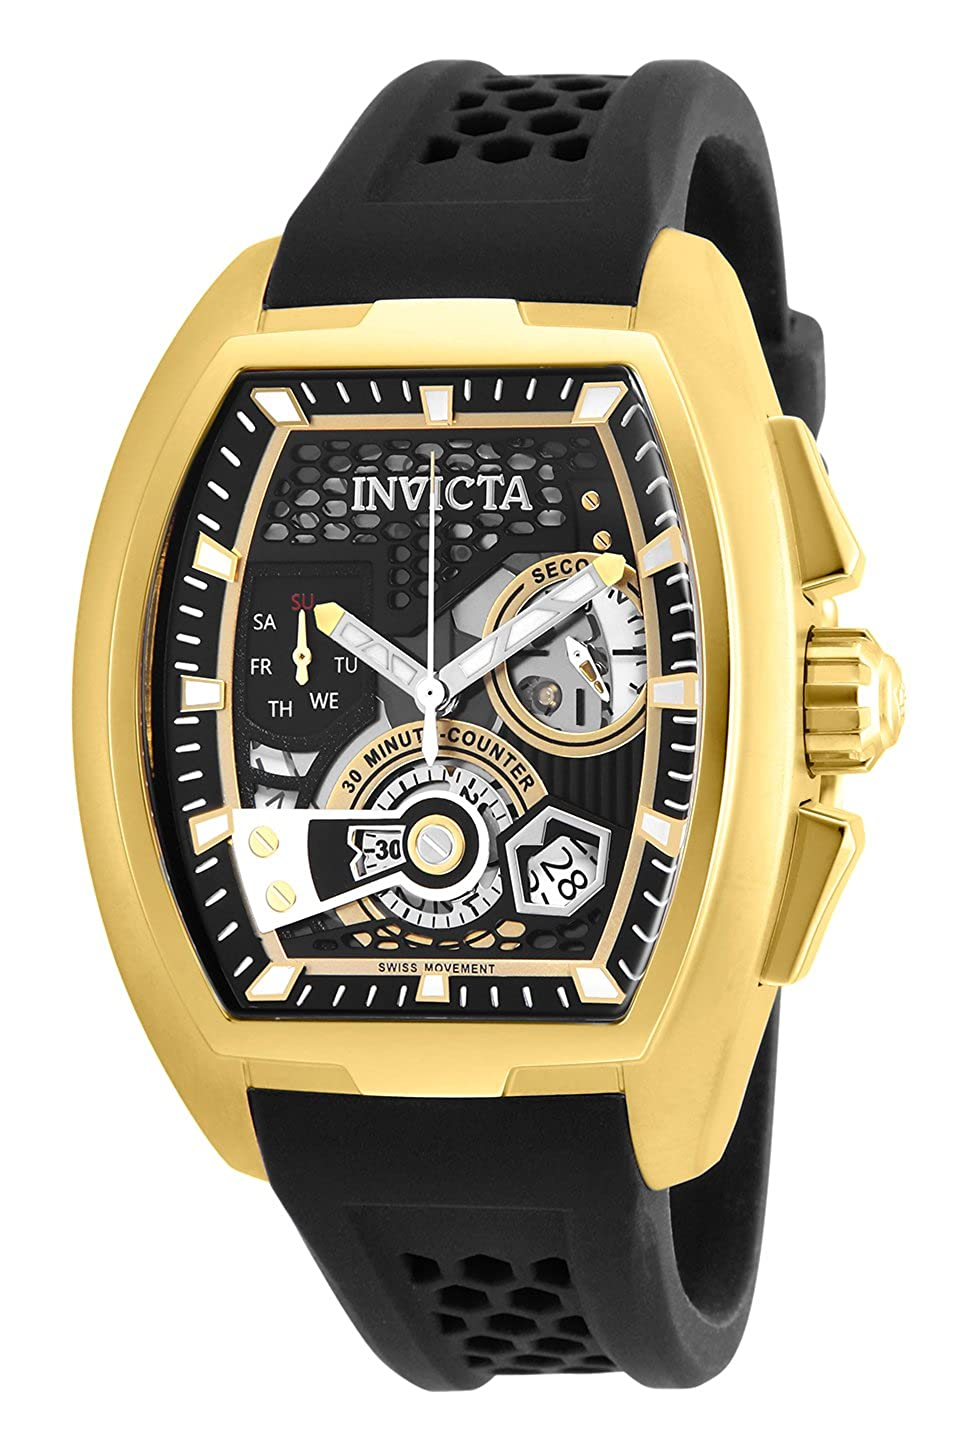 07a5dd2d2 Amazon.com: Invicta Men's S1 Rally Stainless Steel Quartz Watch with  Silicone Strap, Black, 22 (Model: 26398: Watches